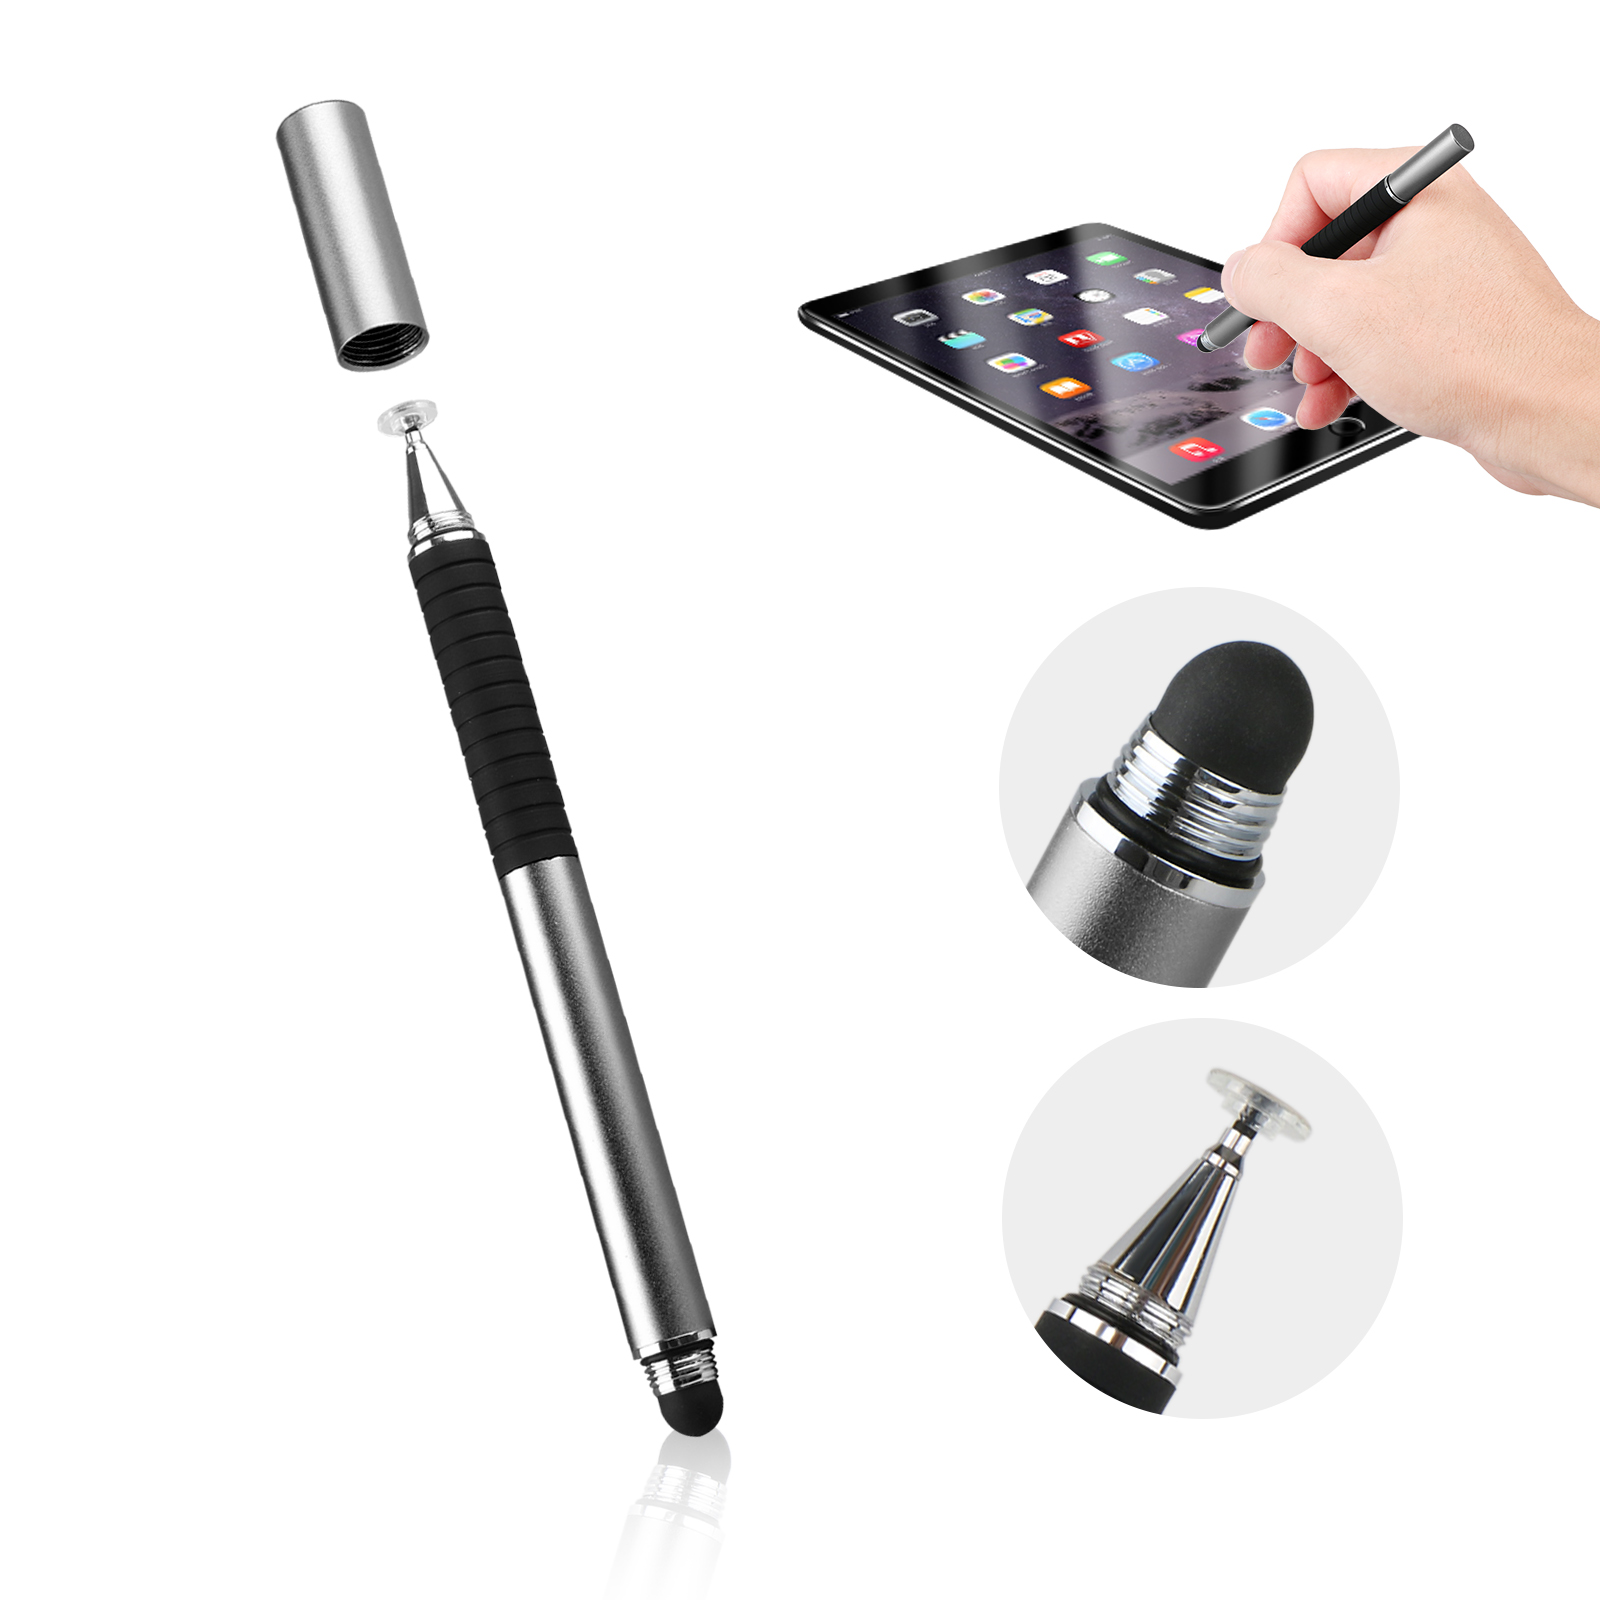 TSV Capacitive Pen Touch For Tablet iPad Phone Samsung PC Screen Stylus Pencil